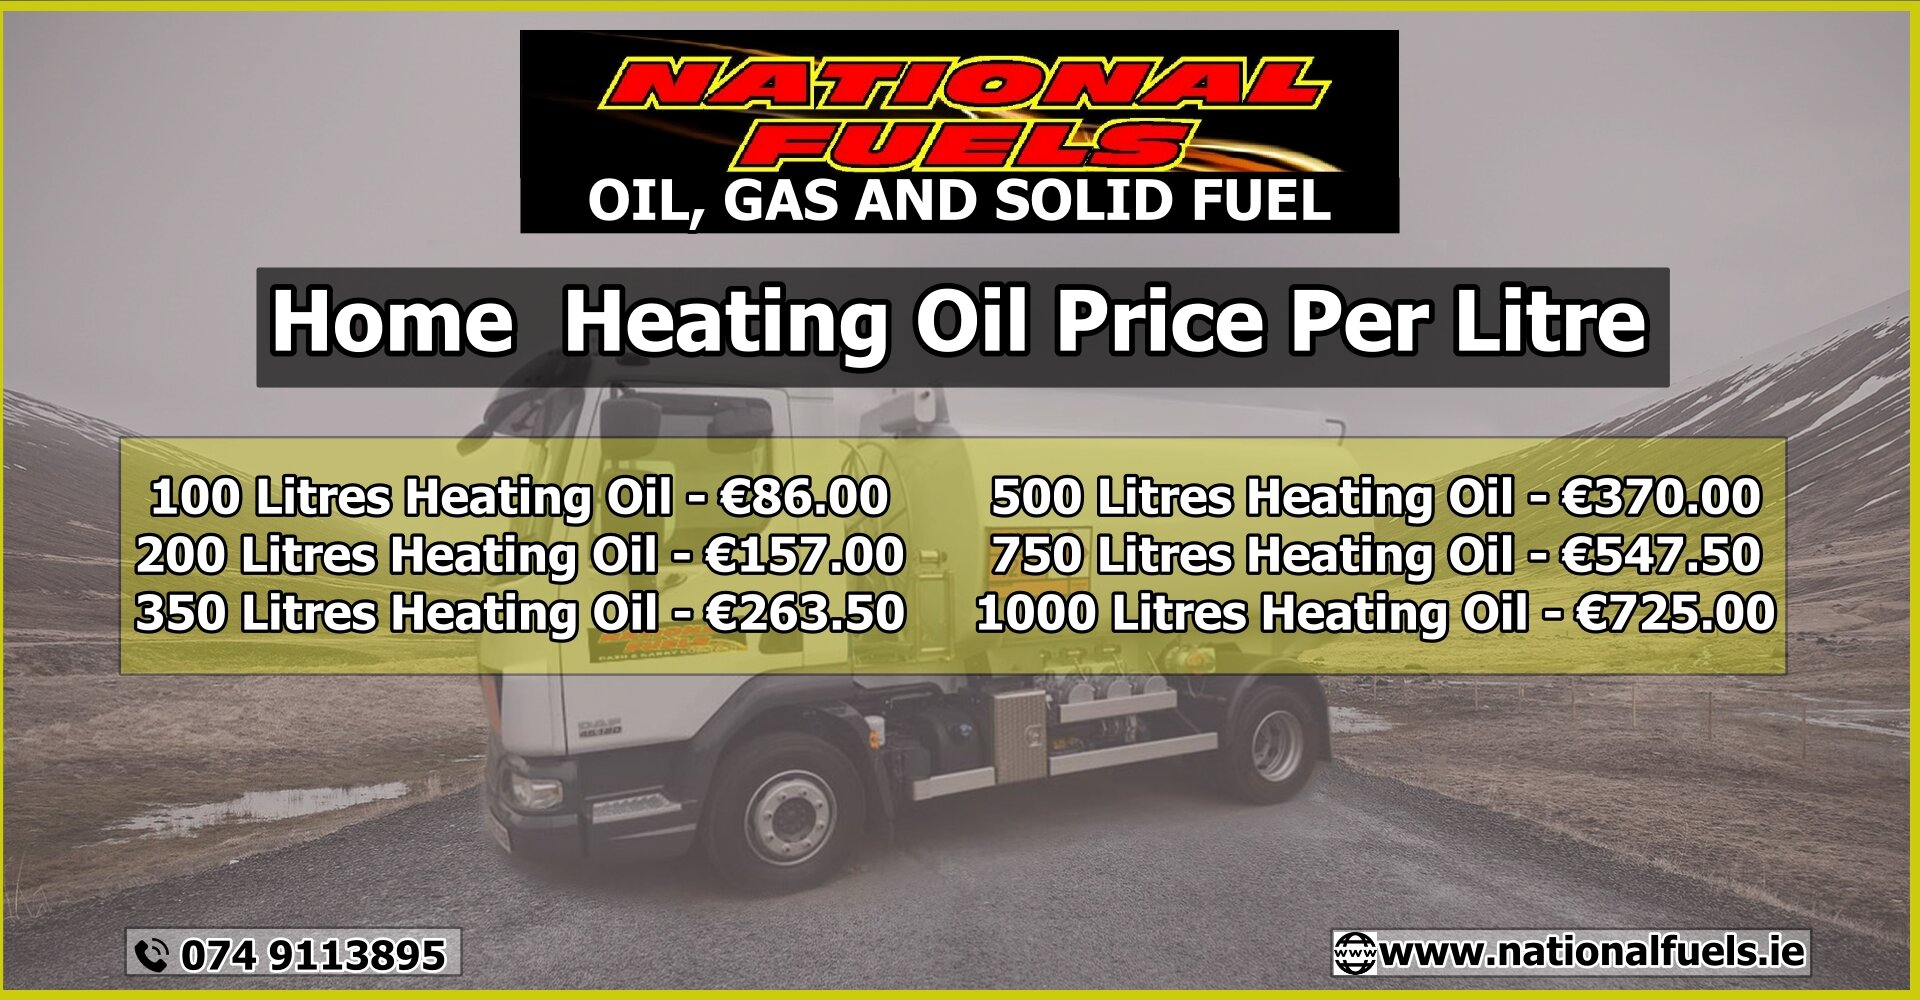 national fuels Sep.jpg